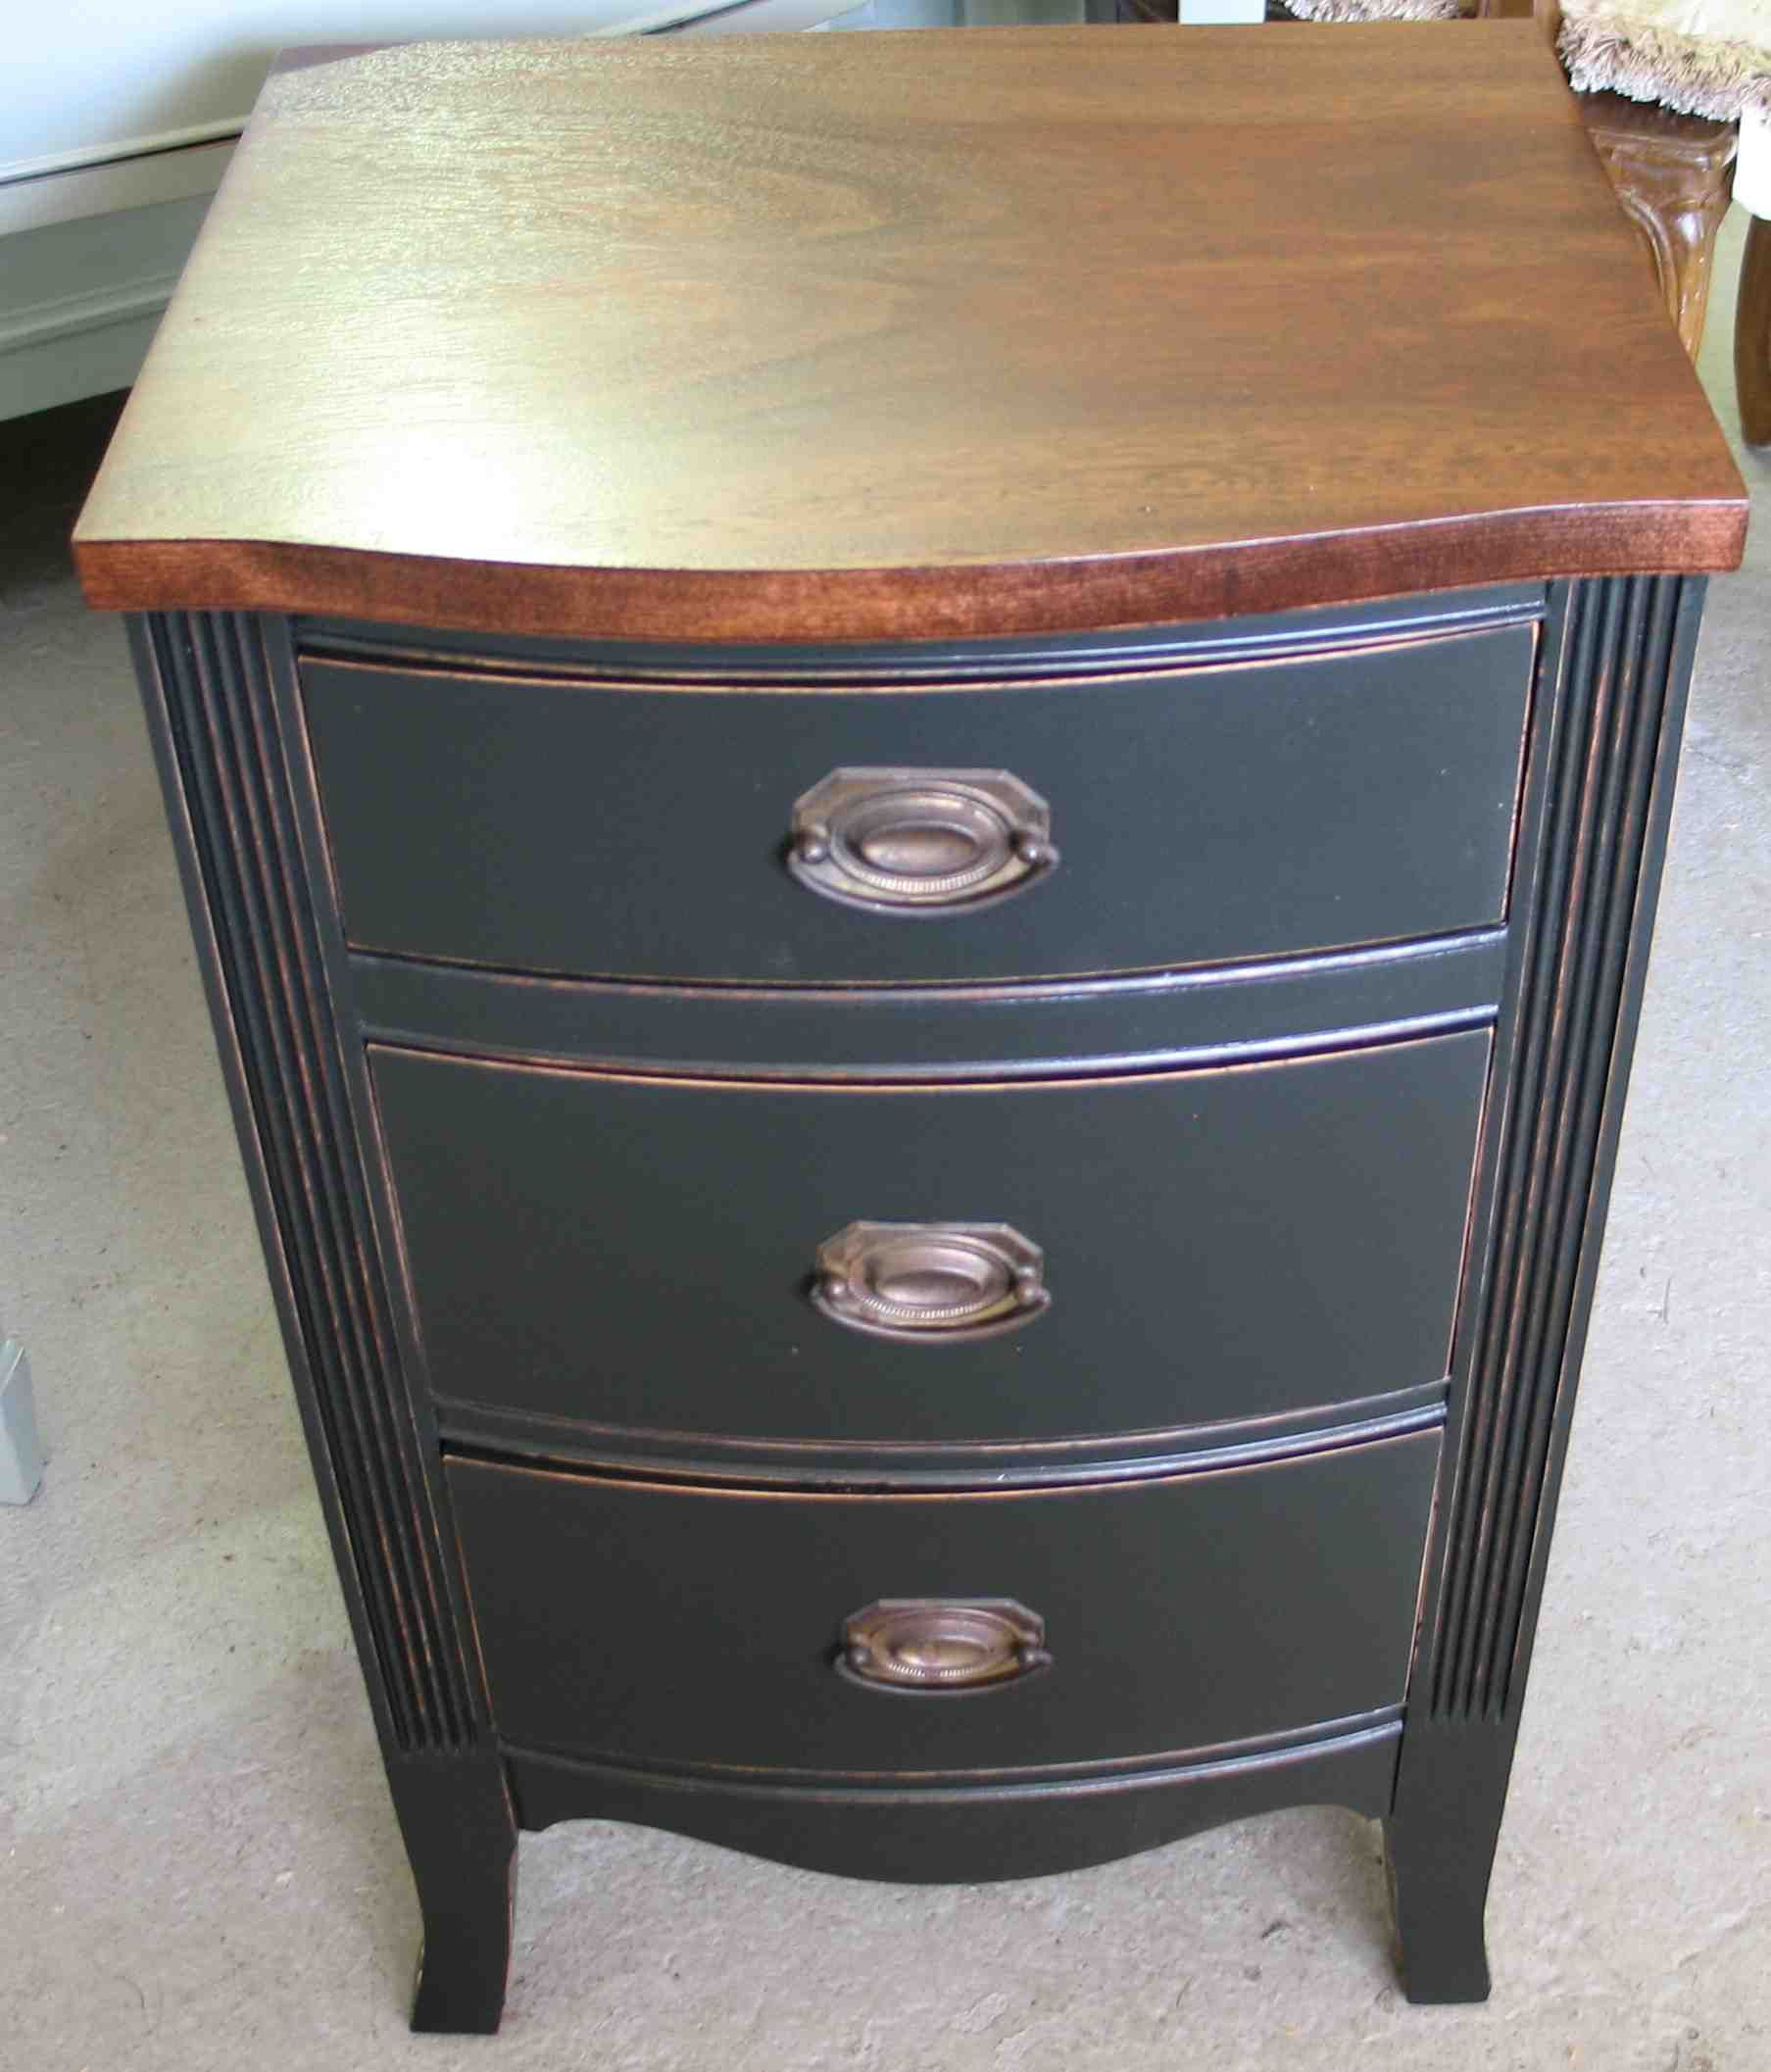 Tips for Selecting Small Tables - Coffee Tables Furniture ...